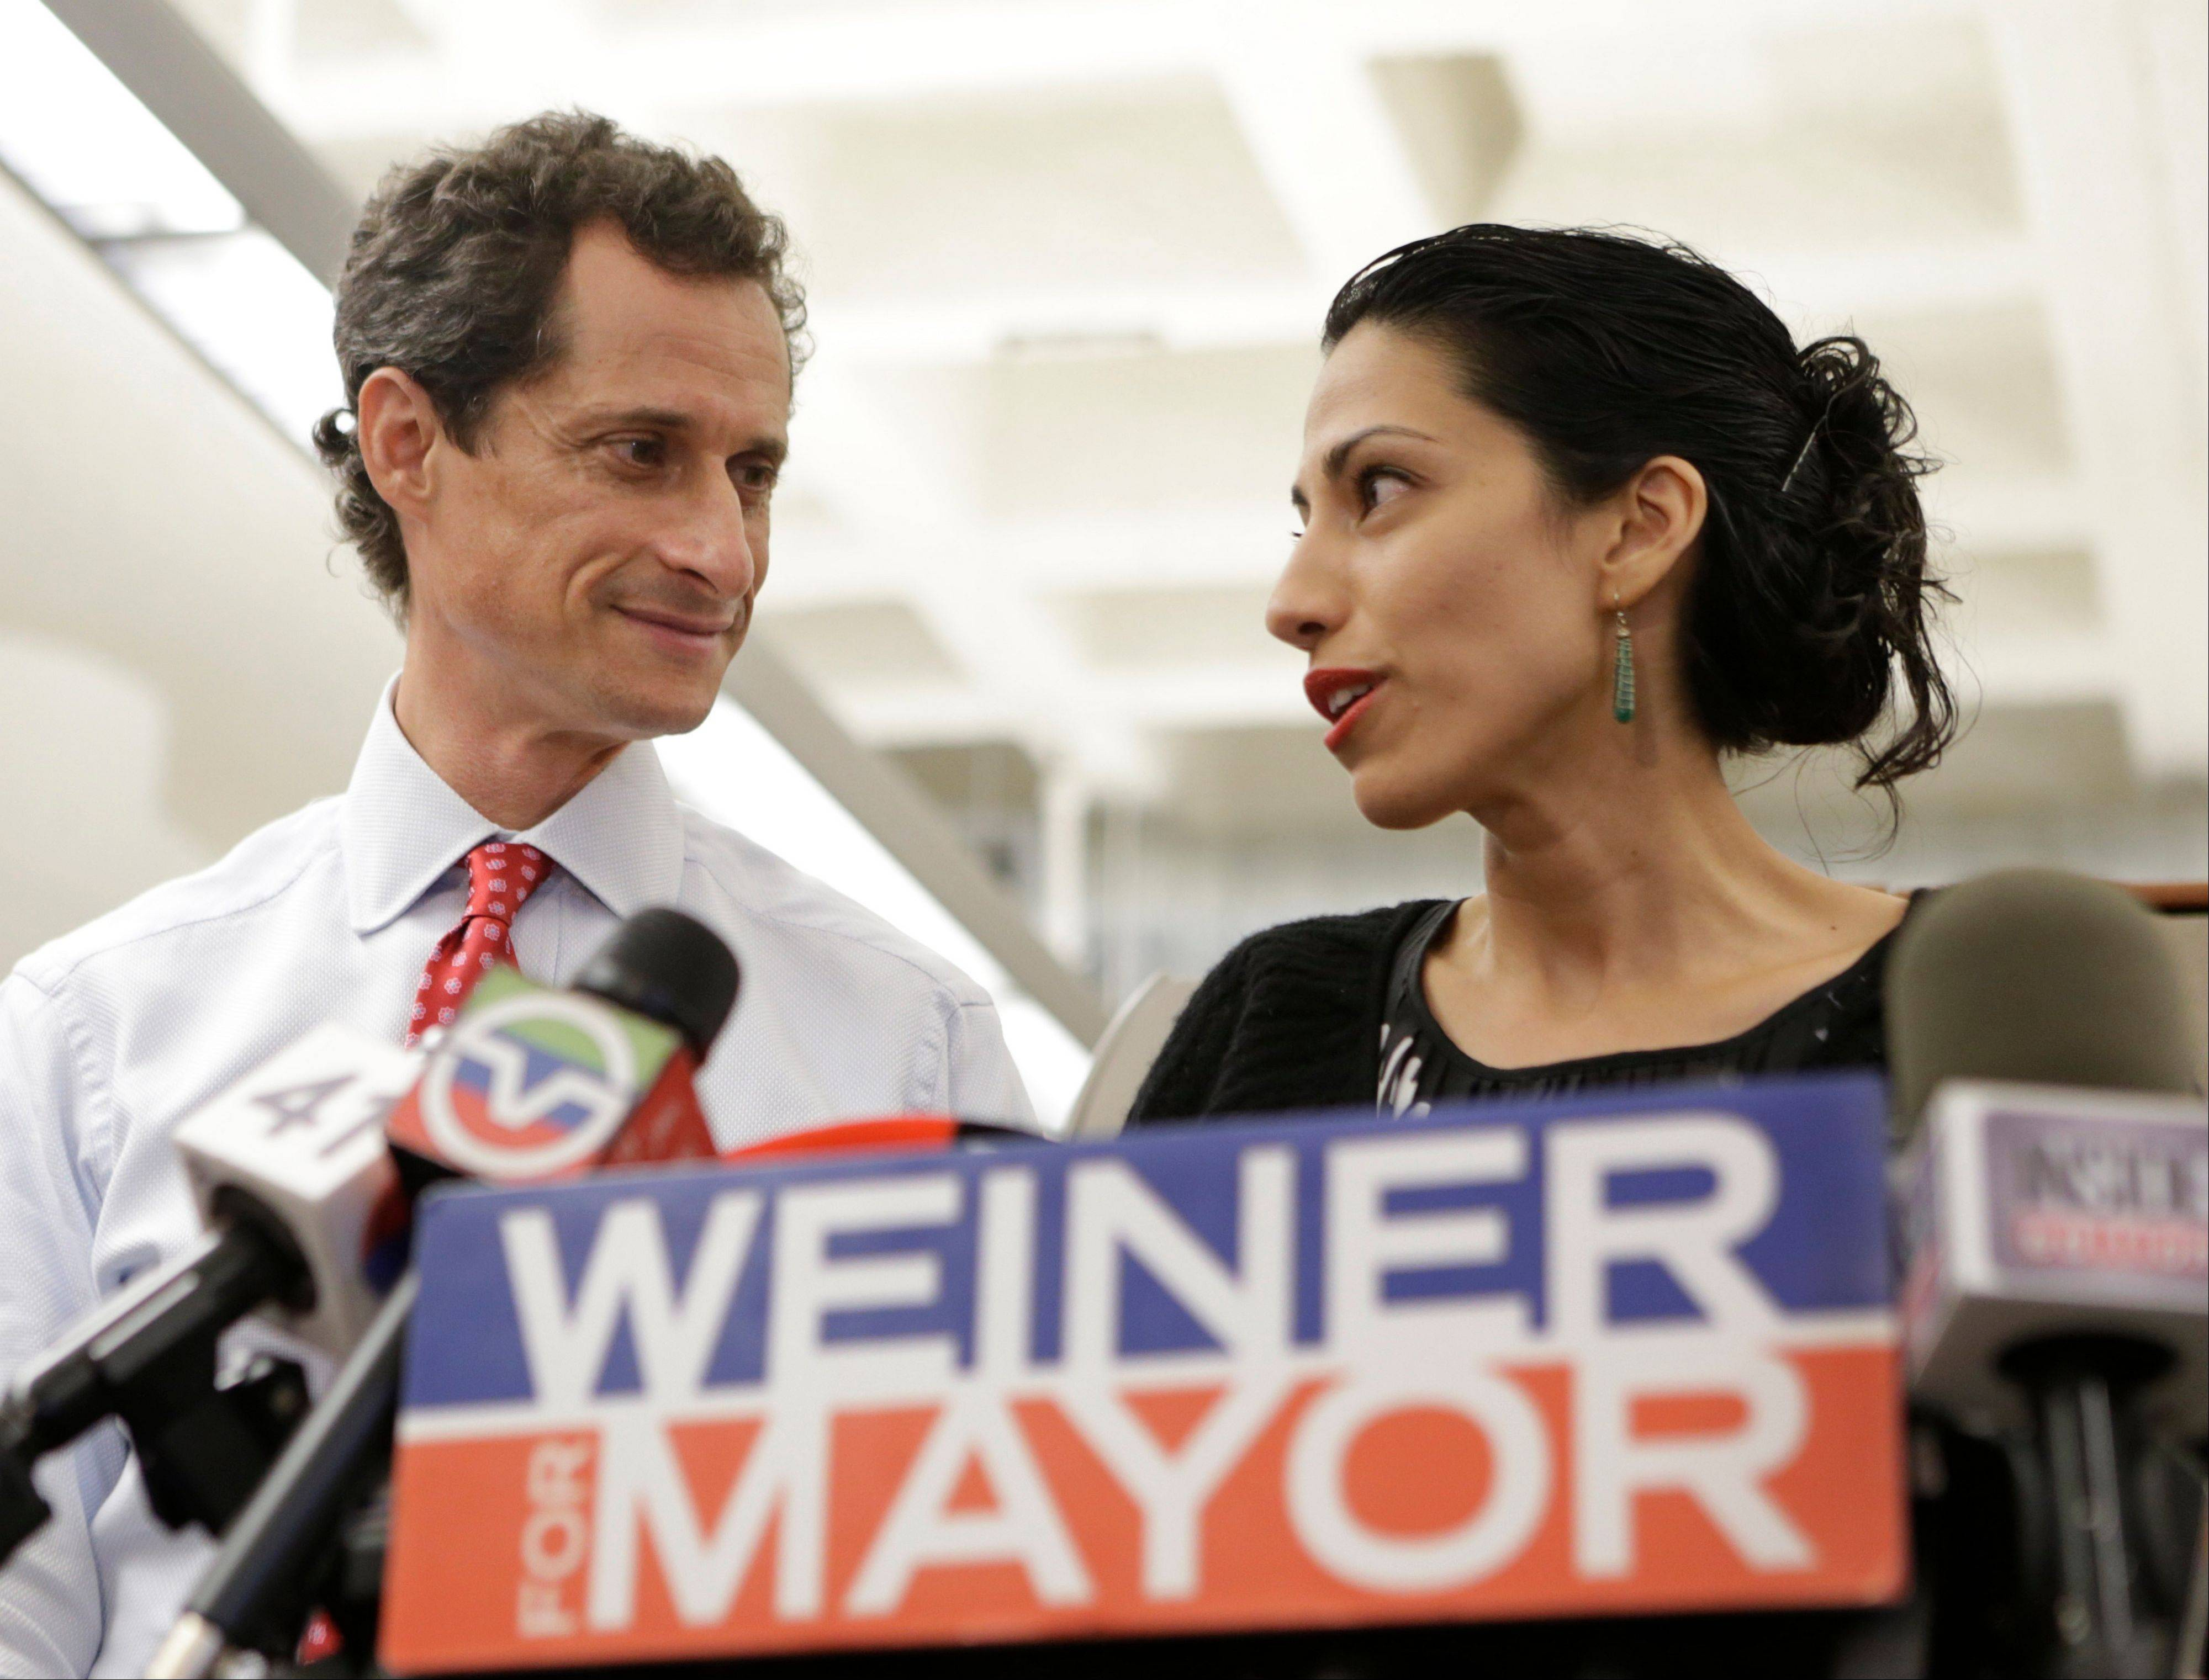 Huma Abedin, alongside her husband, New York mayoral candidate Anthony Weiner, speaks during a news conference at the Gay Men's Health Crisis headquarters, Tuesday, July 23, 2013, in New York.